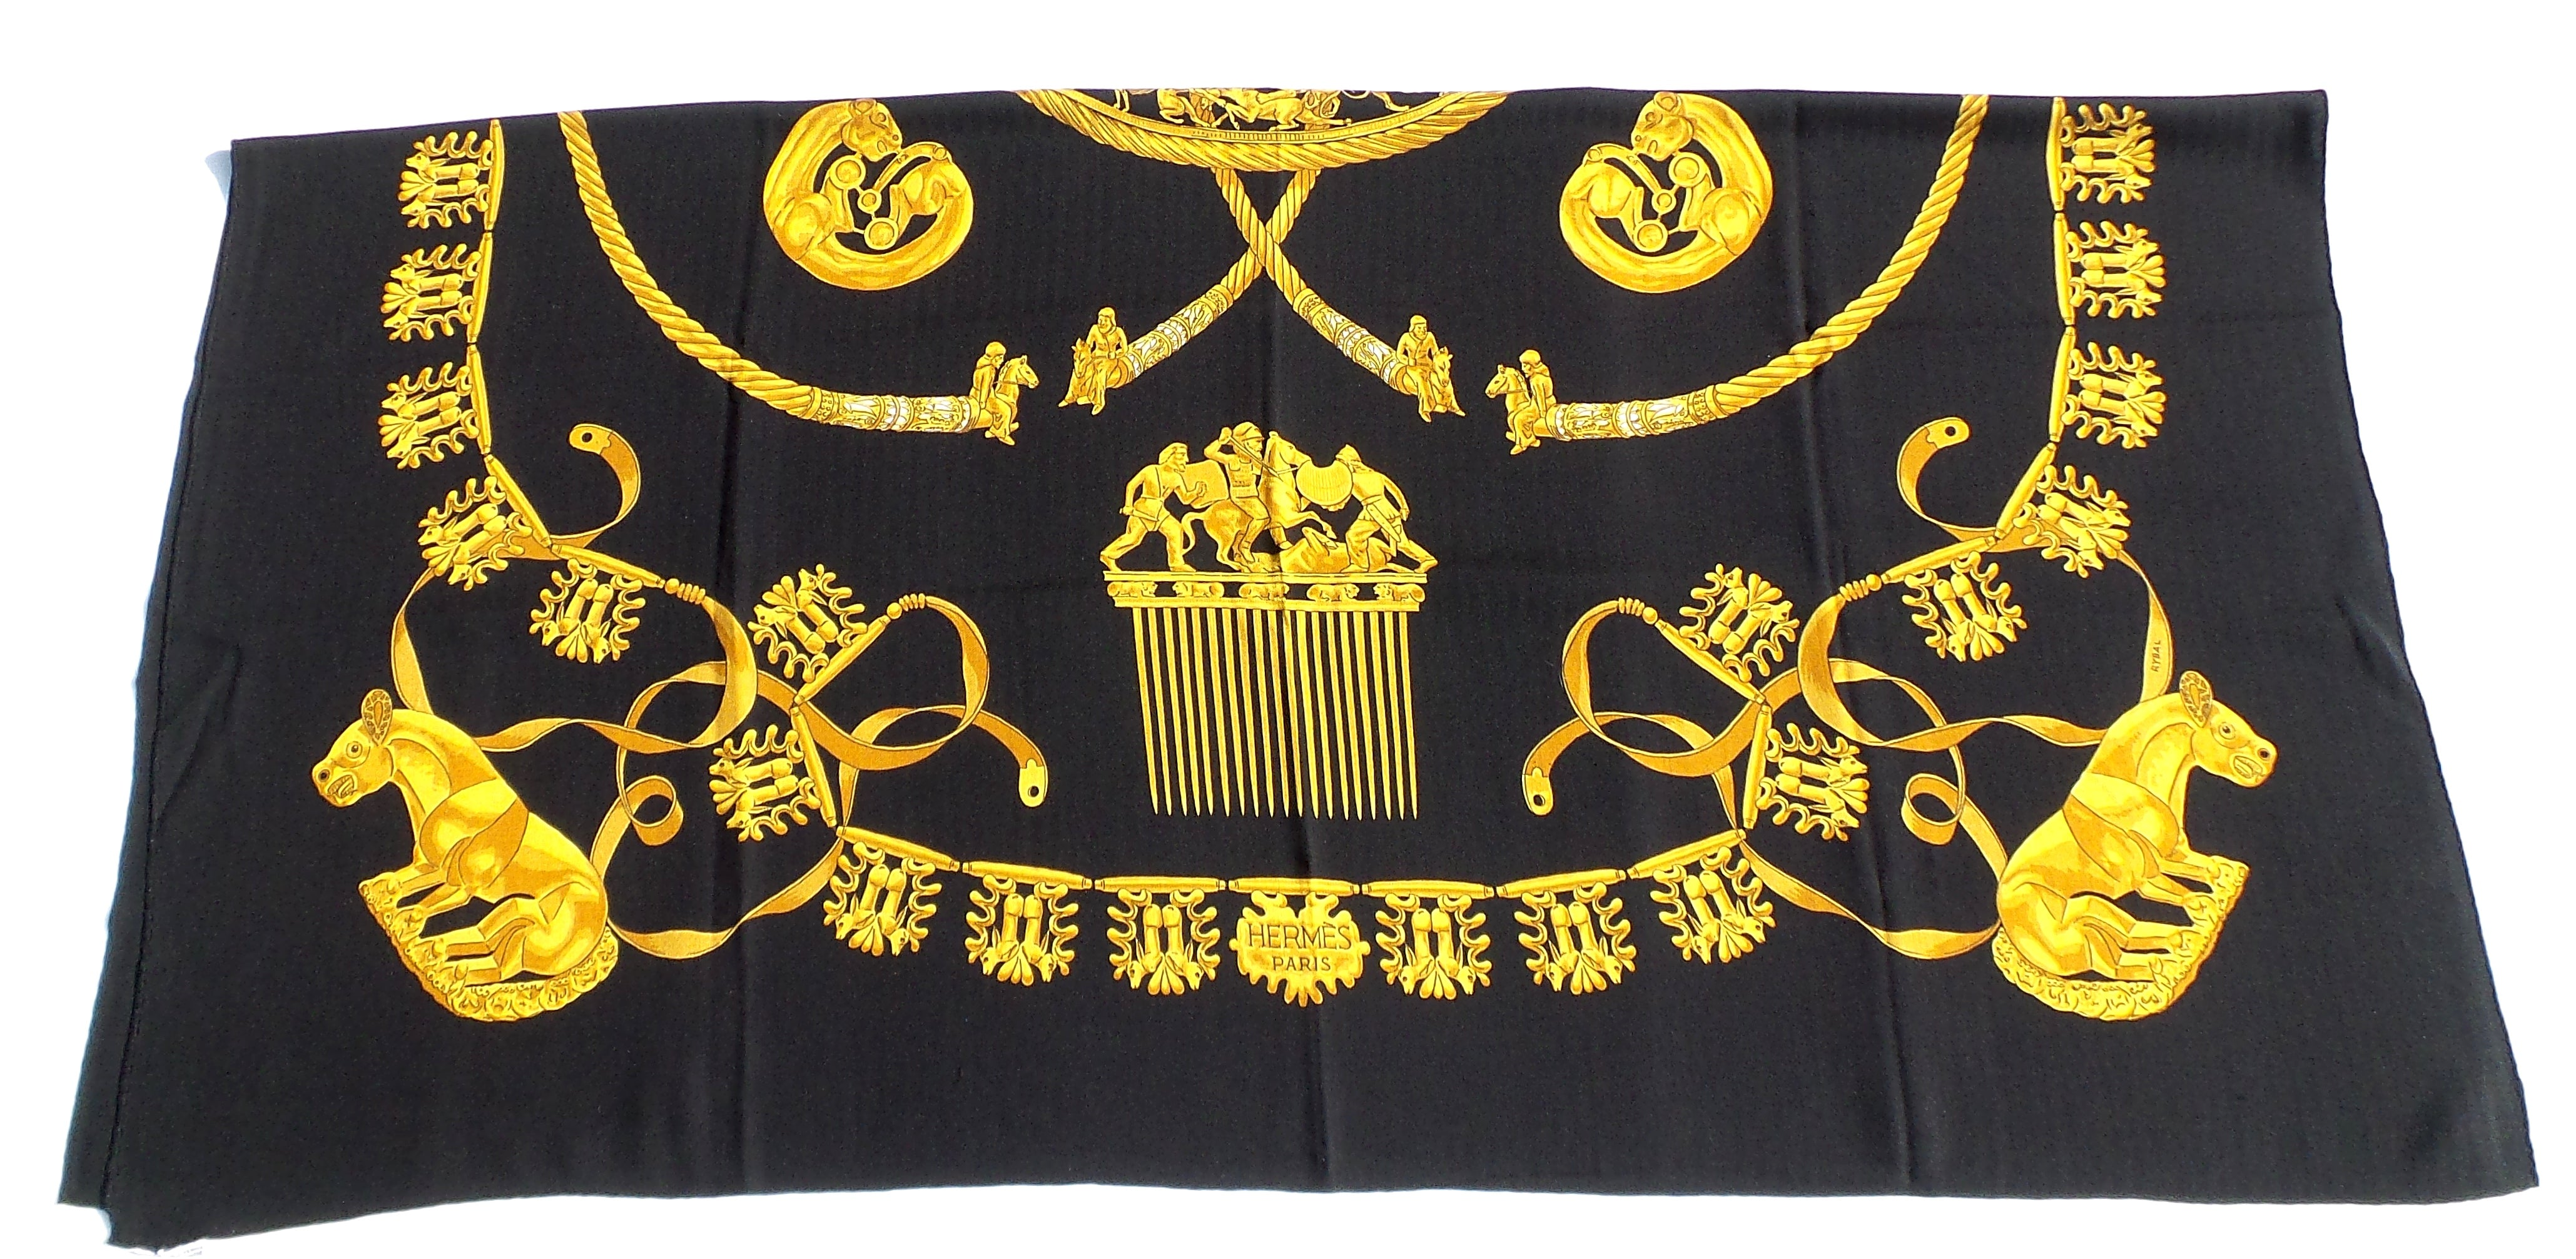 HERMES Black Gold Les Cavaliers D'Or Cashmere Silk GM Shawl Scarf Rybaltchenko